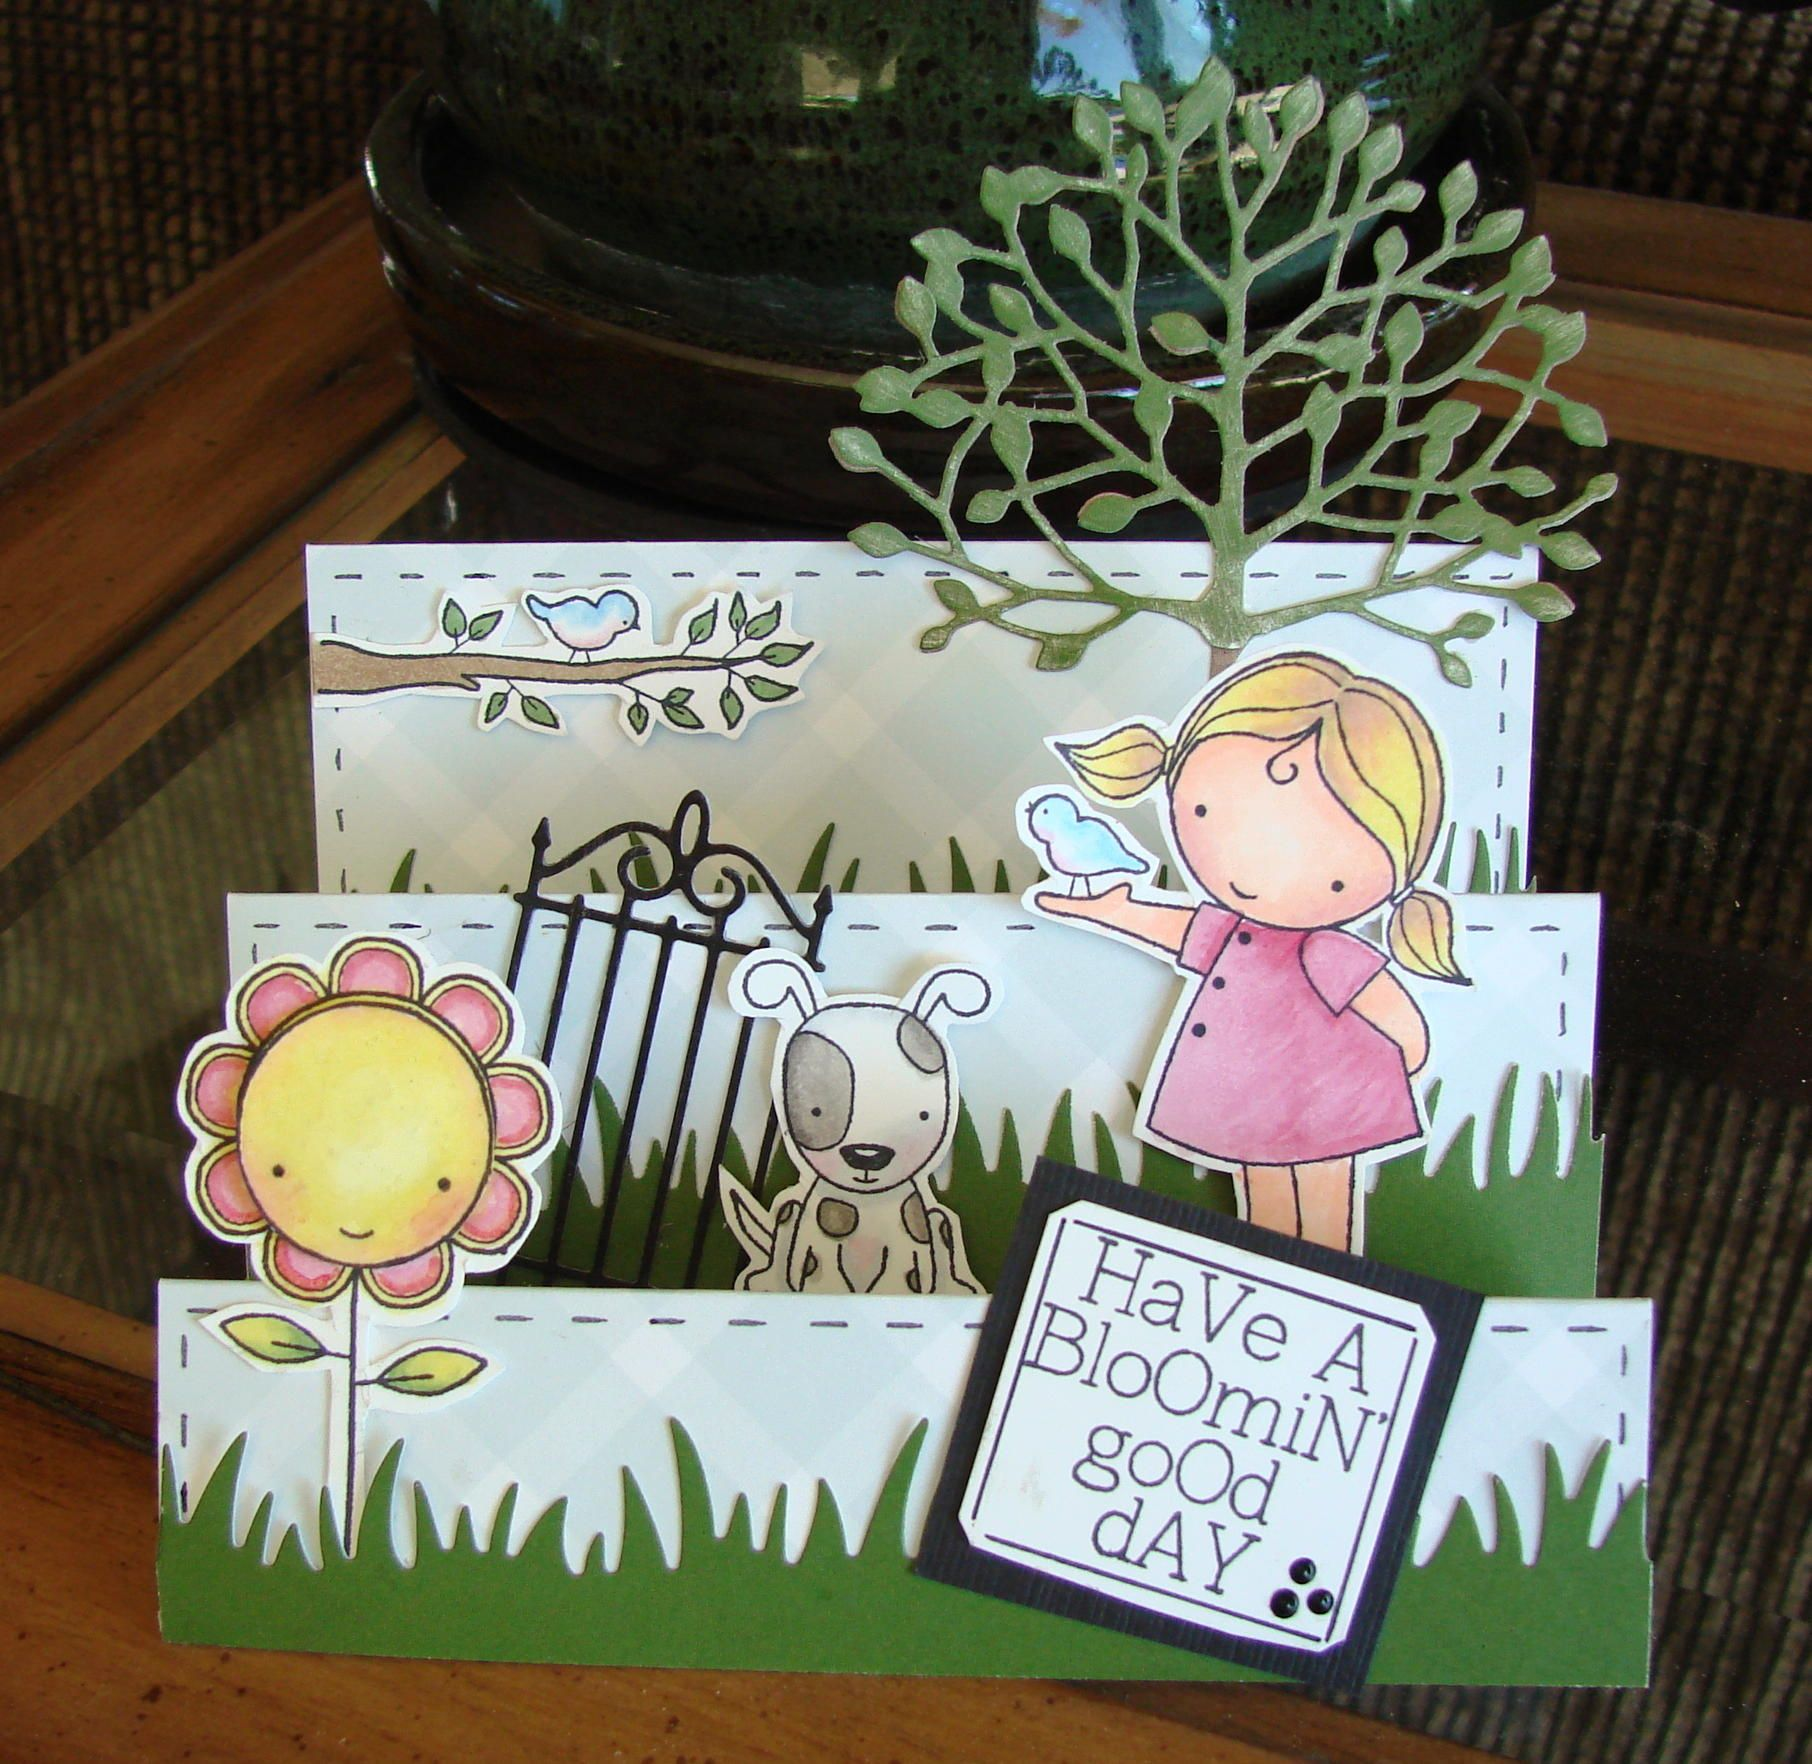 This stamp set is from Darcie's Heart & Home and I knew it would be adorable as a step-card! It turned out so cute. I used copics to color, Martha's grass punch and Memory Box Tree and gate dies.